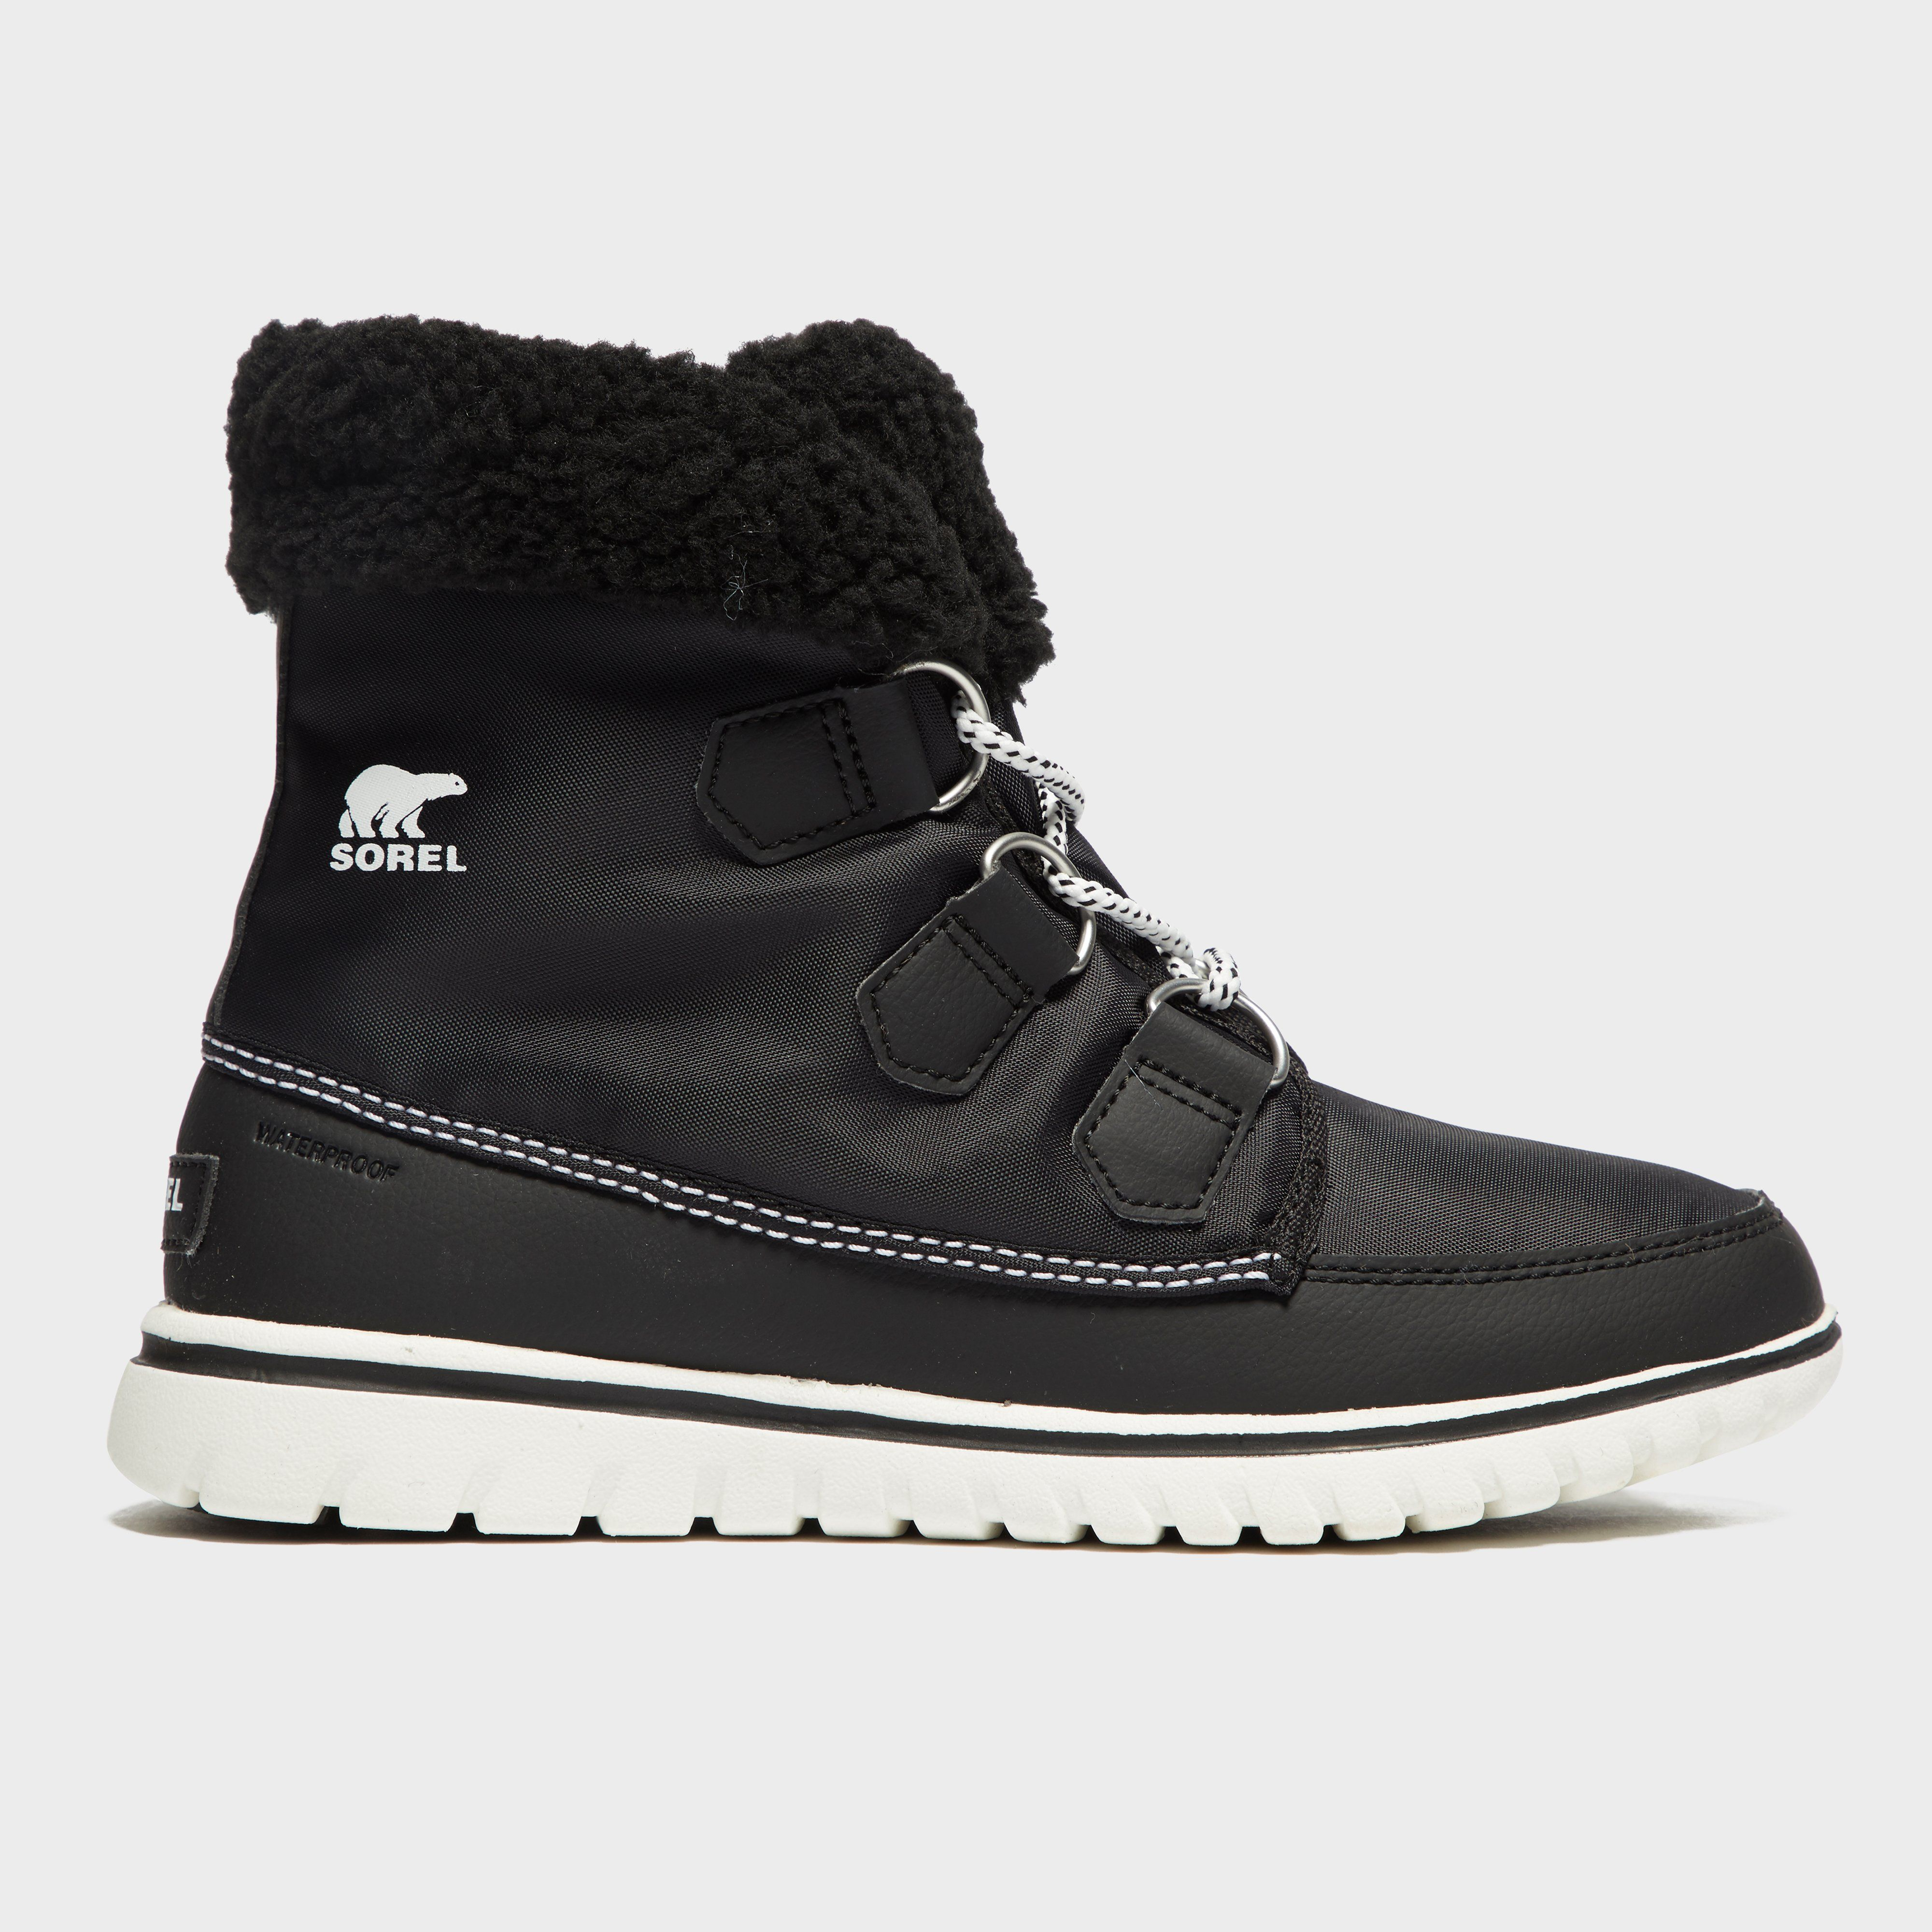 SOREL Women's Cozy Carnival™ Snow Boots